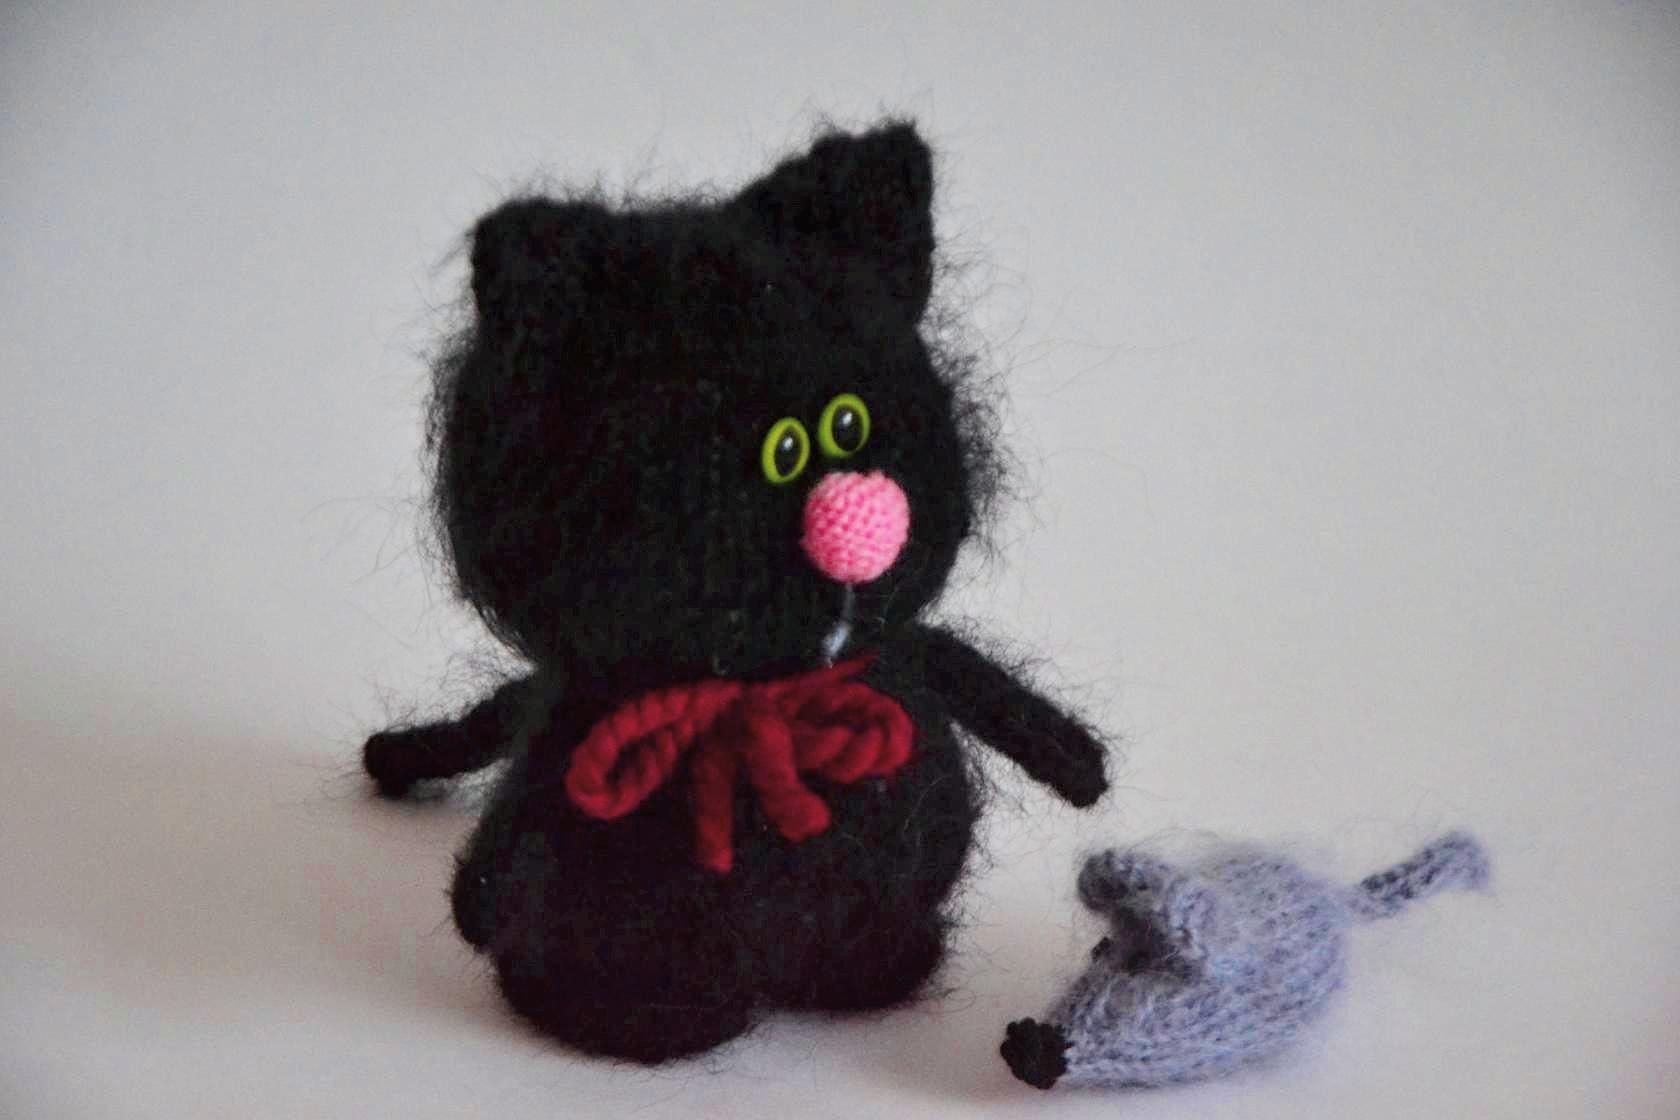 Knitted Cats Kitten Amigurumi Toy Black Knitted Cat Cute Fluffy